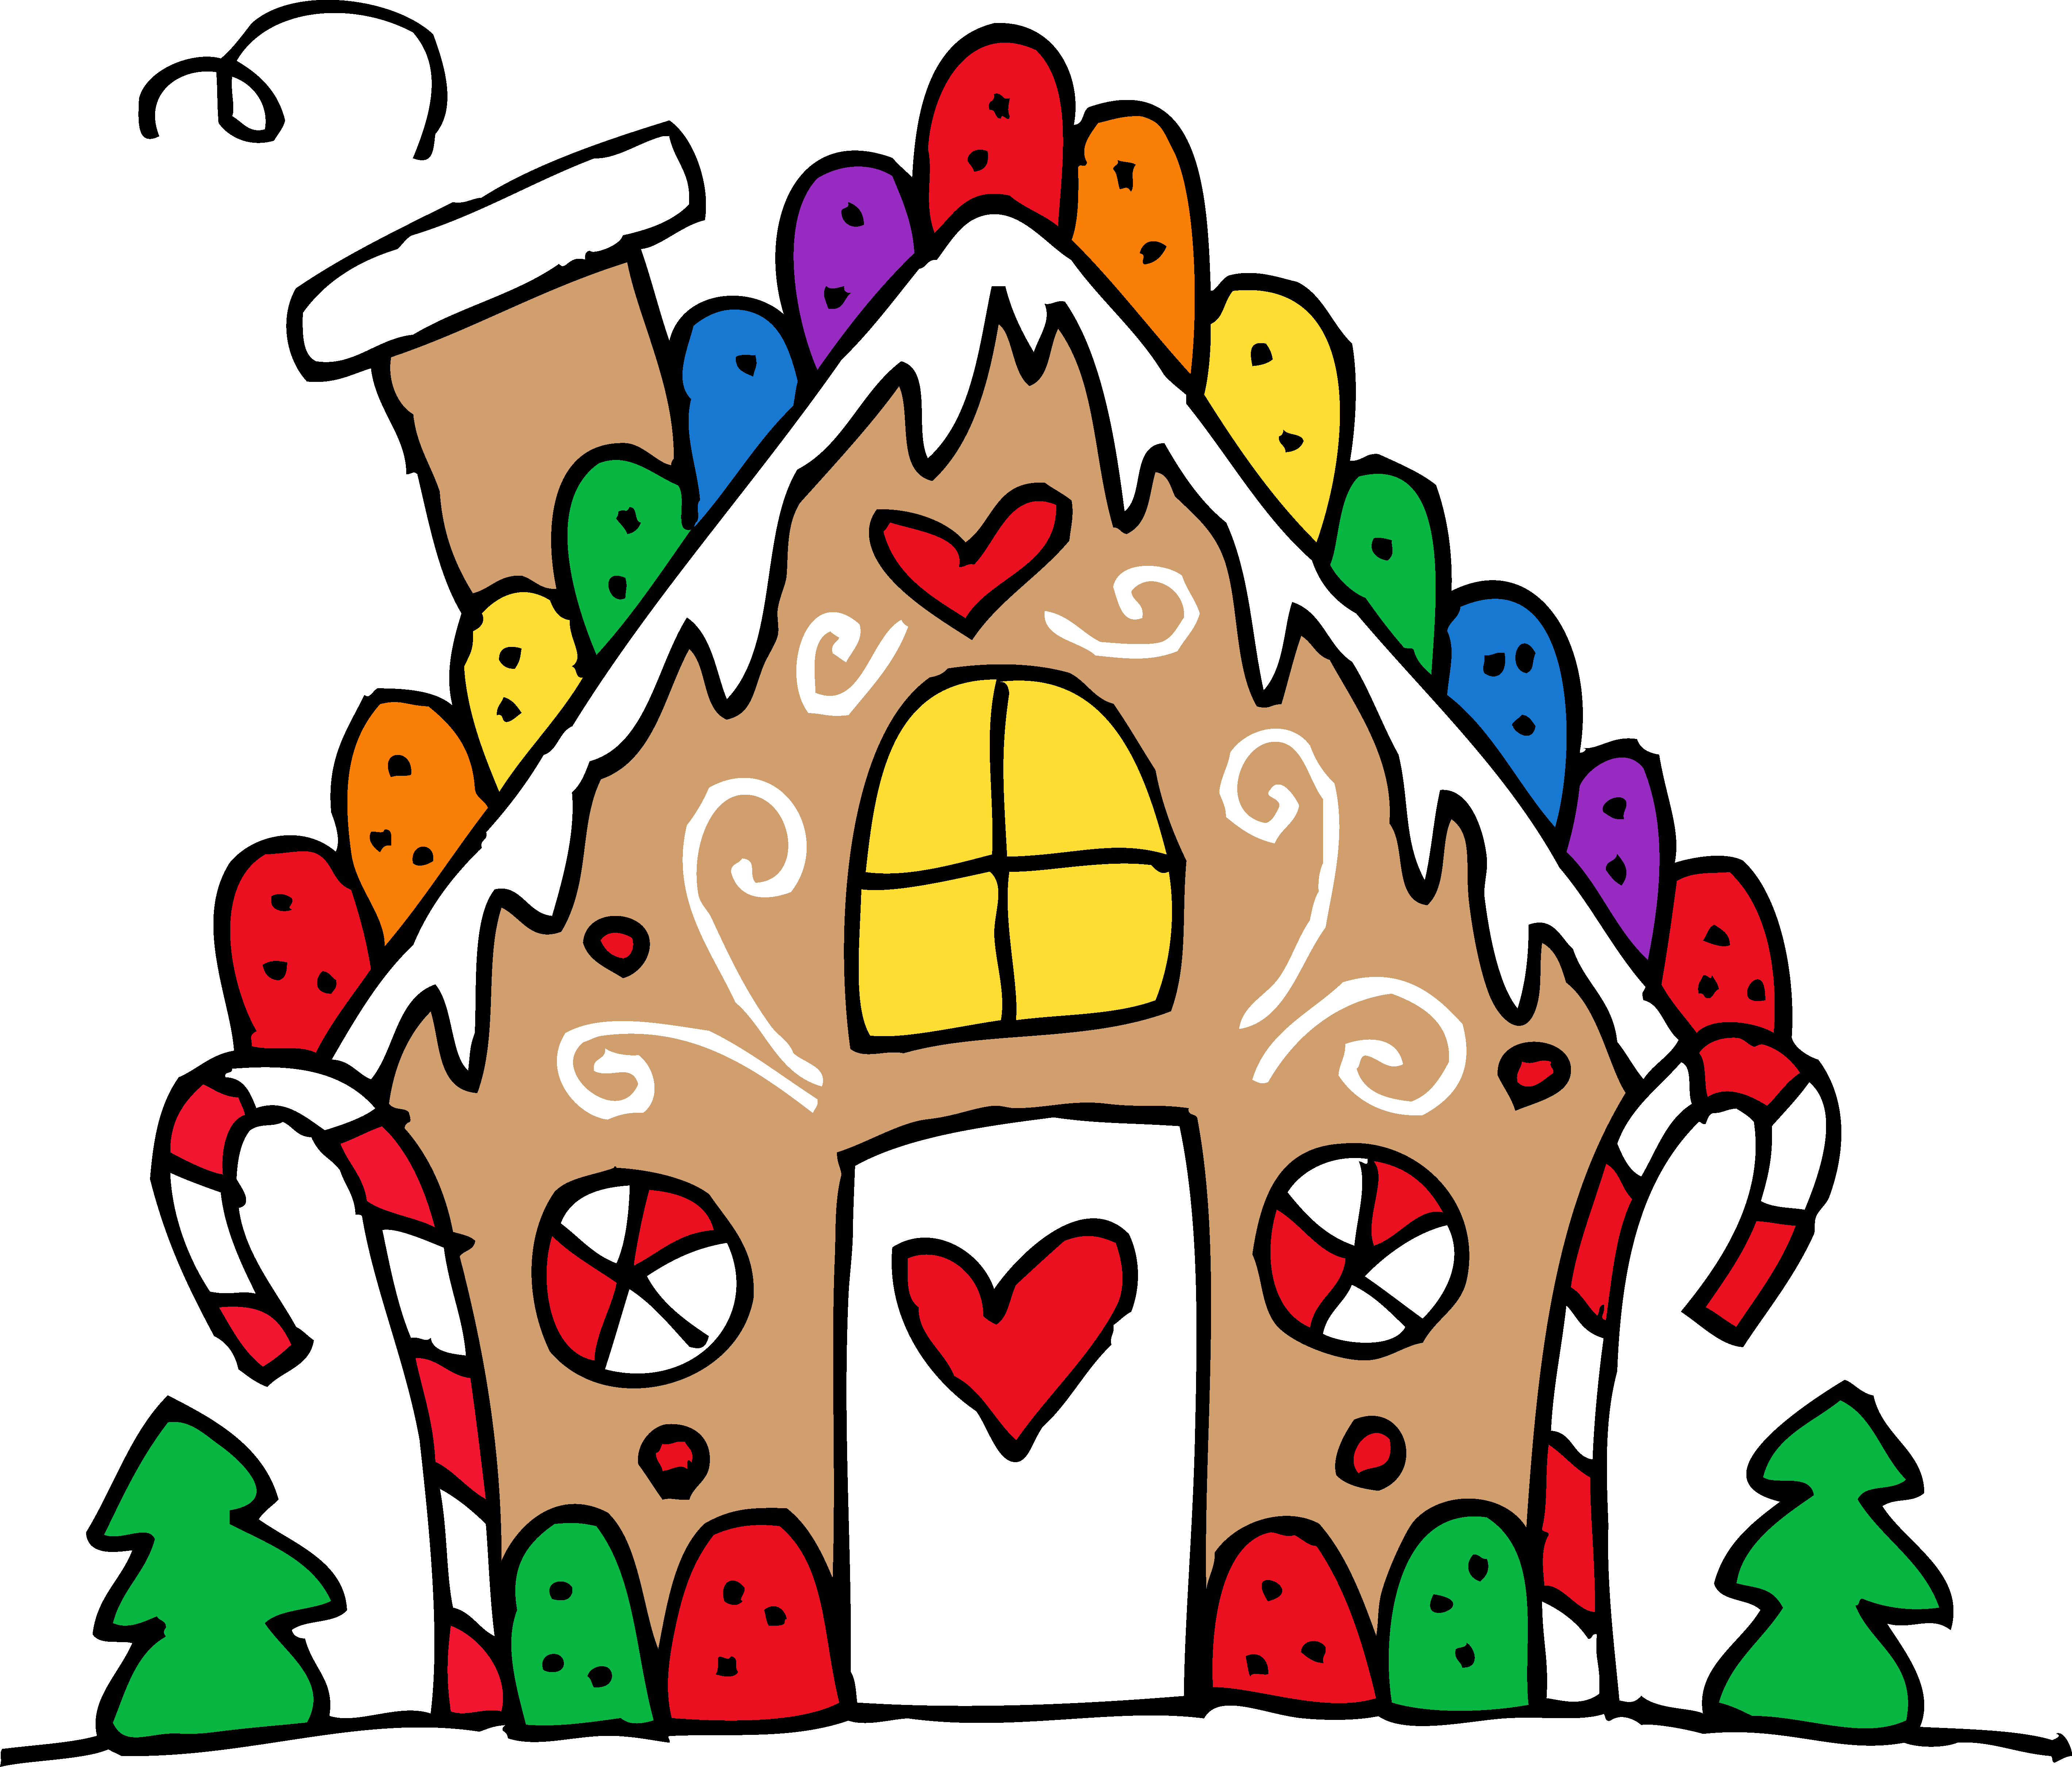 Free clipart house home svg royalty free House Clipart Cute Free collection | Download and share House ... svg royalty free